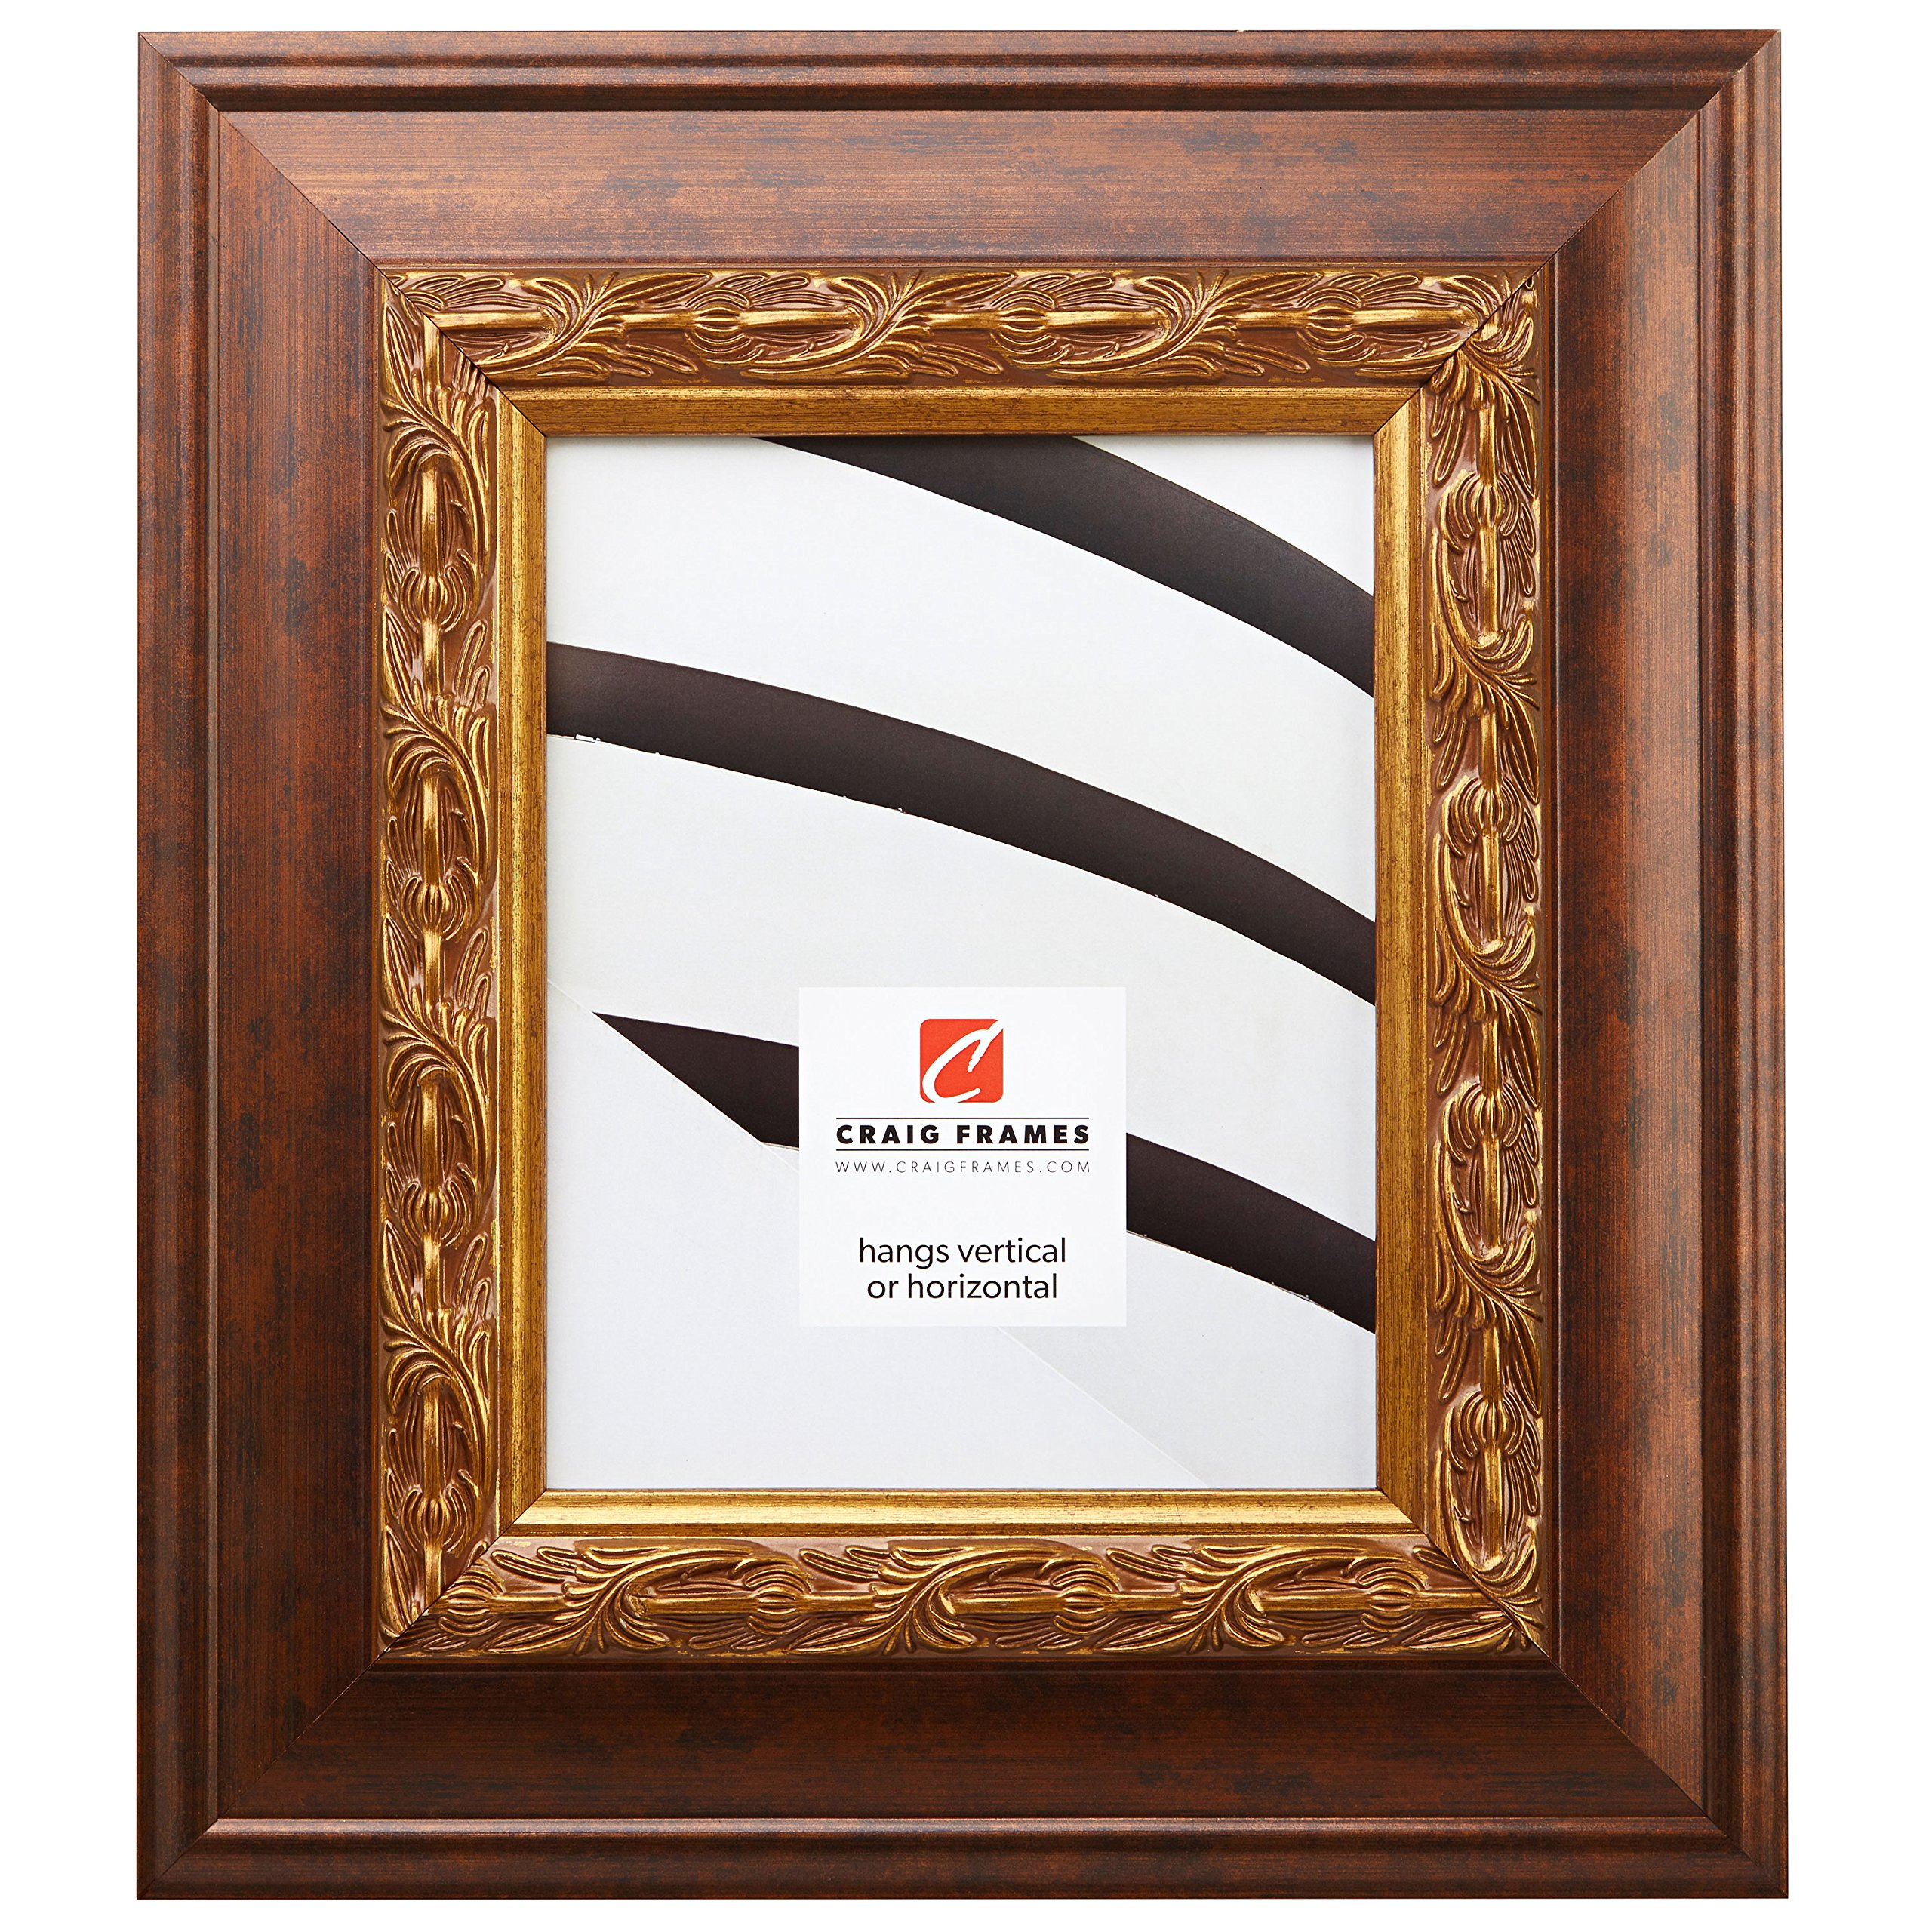 Craig Frames 9146 16 by 24-Inch Picture Frame, Ornate Finish, 3.5-Inch Wide, Antique Brushed Gold by Craig Frames